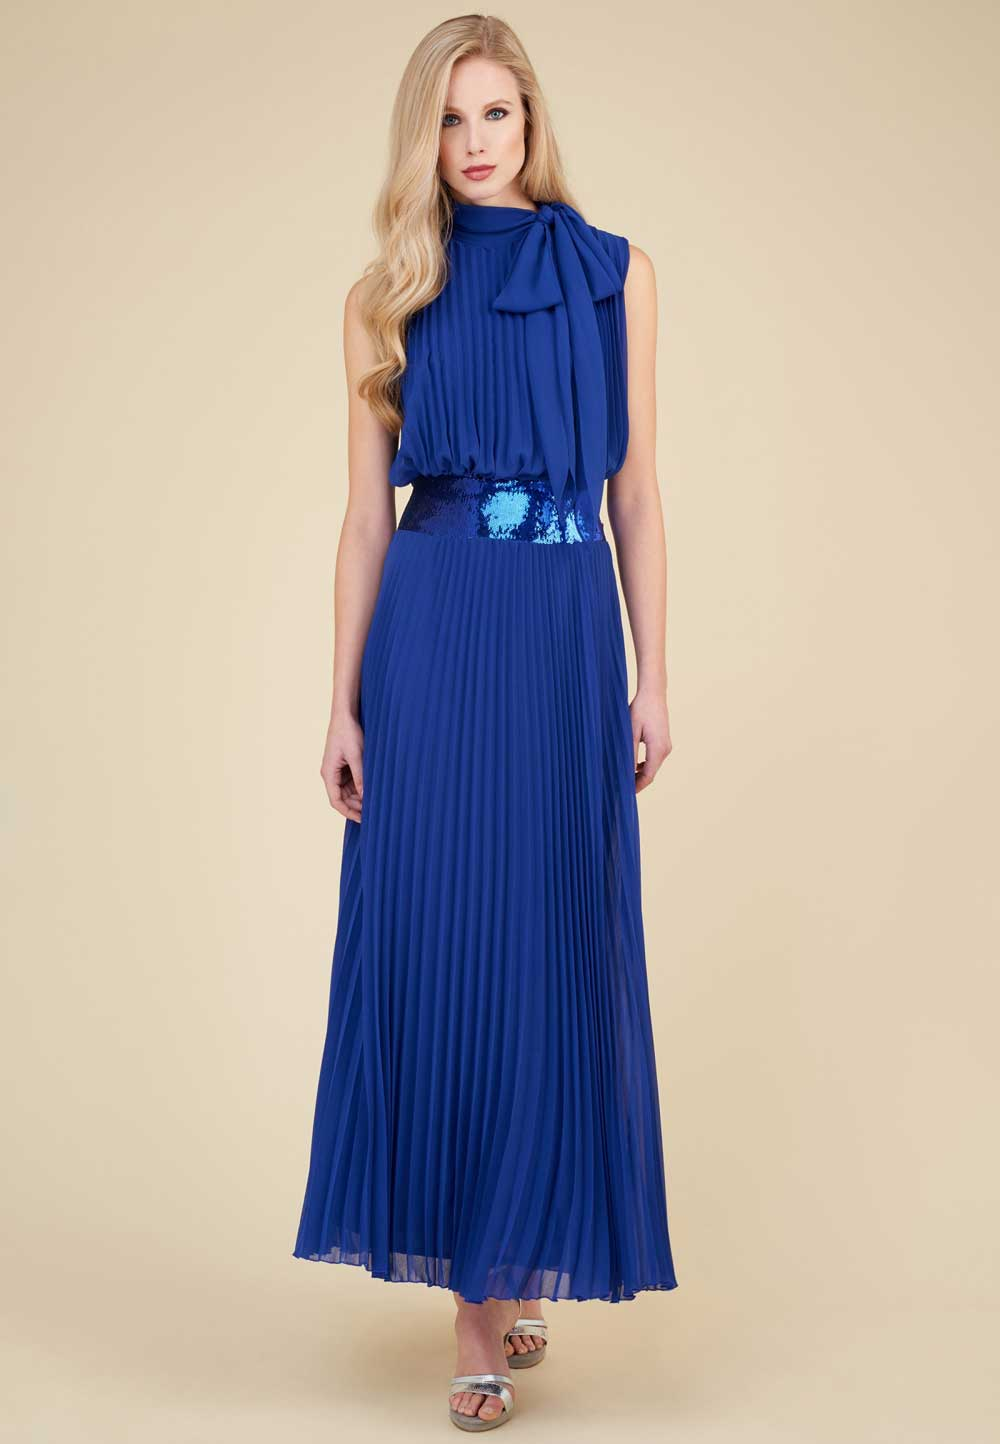 Long dresses for the Luisa Spagnoli ceremony, spring summer 2018